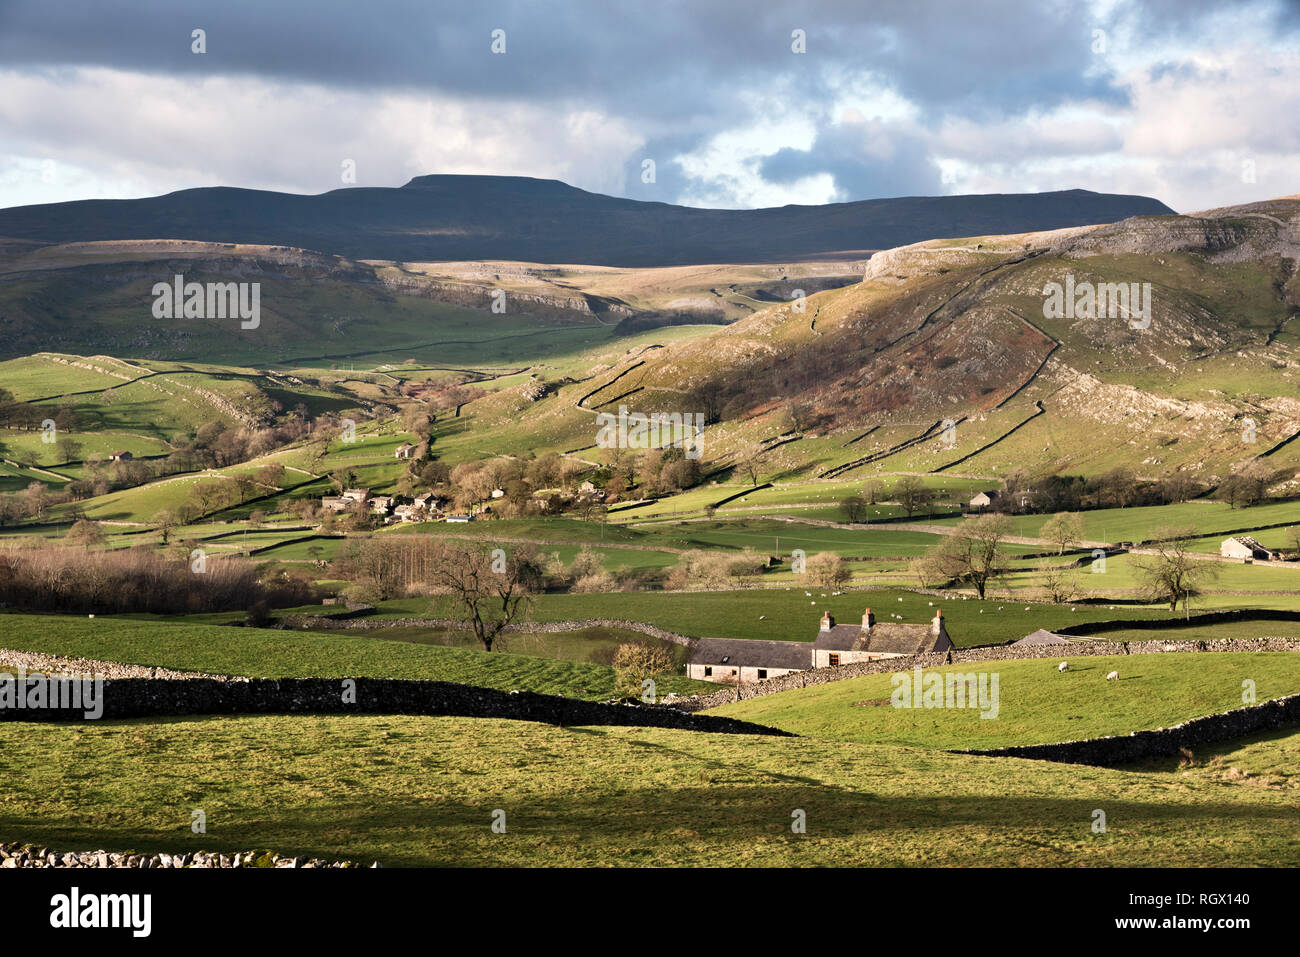 Winter view of Ingleborough peak and Wharfe hamlet, near Austwick, Yorkshire Dales National Park, UK - Stock Image